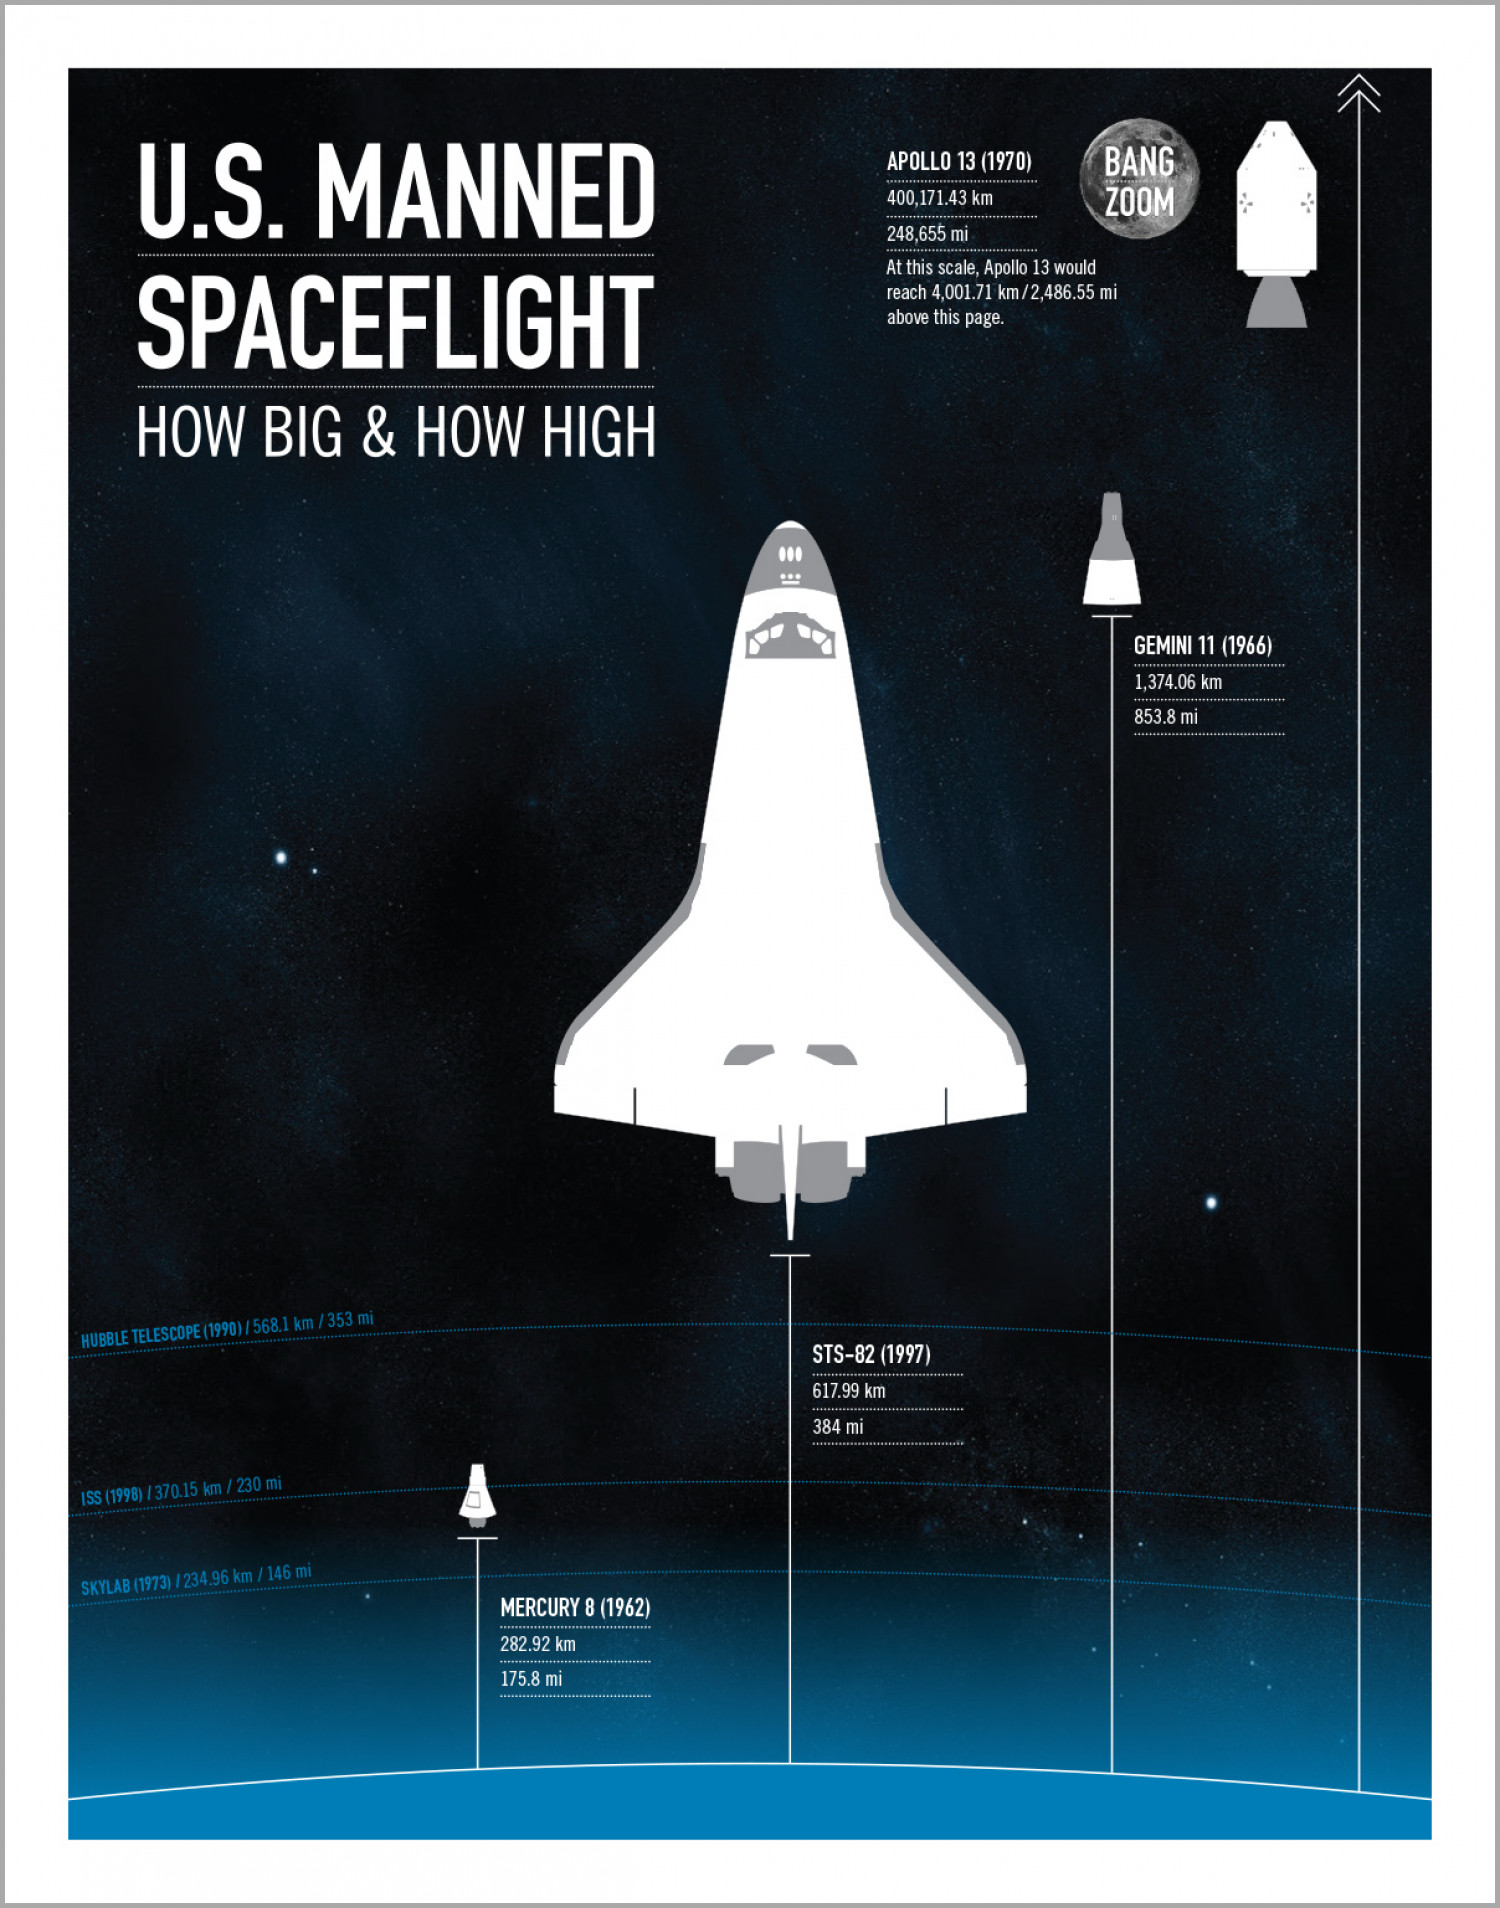 U.S. Manned Spaceflight: How Big and How High Infographic